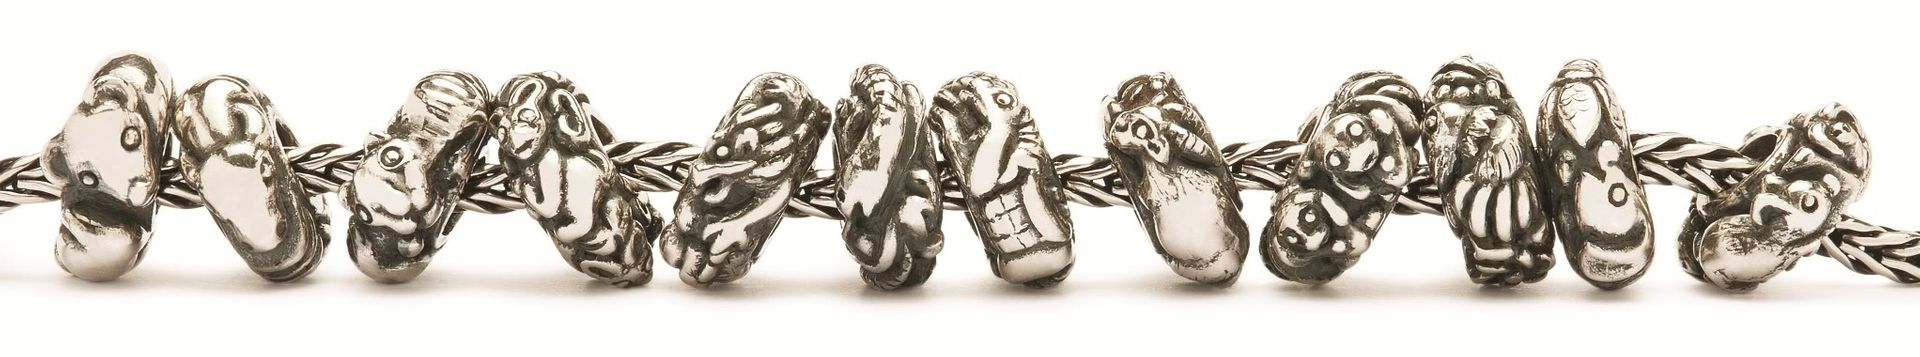 chinese - Trollbeads will release limited edition Chinese Zodiac beads - Page 11 8251c395